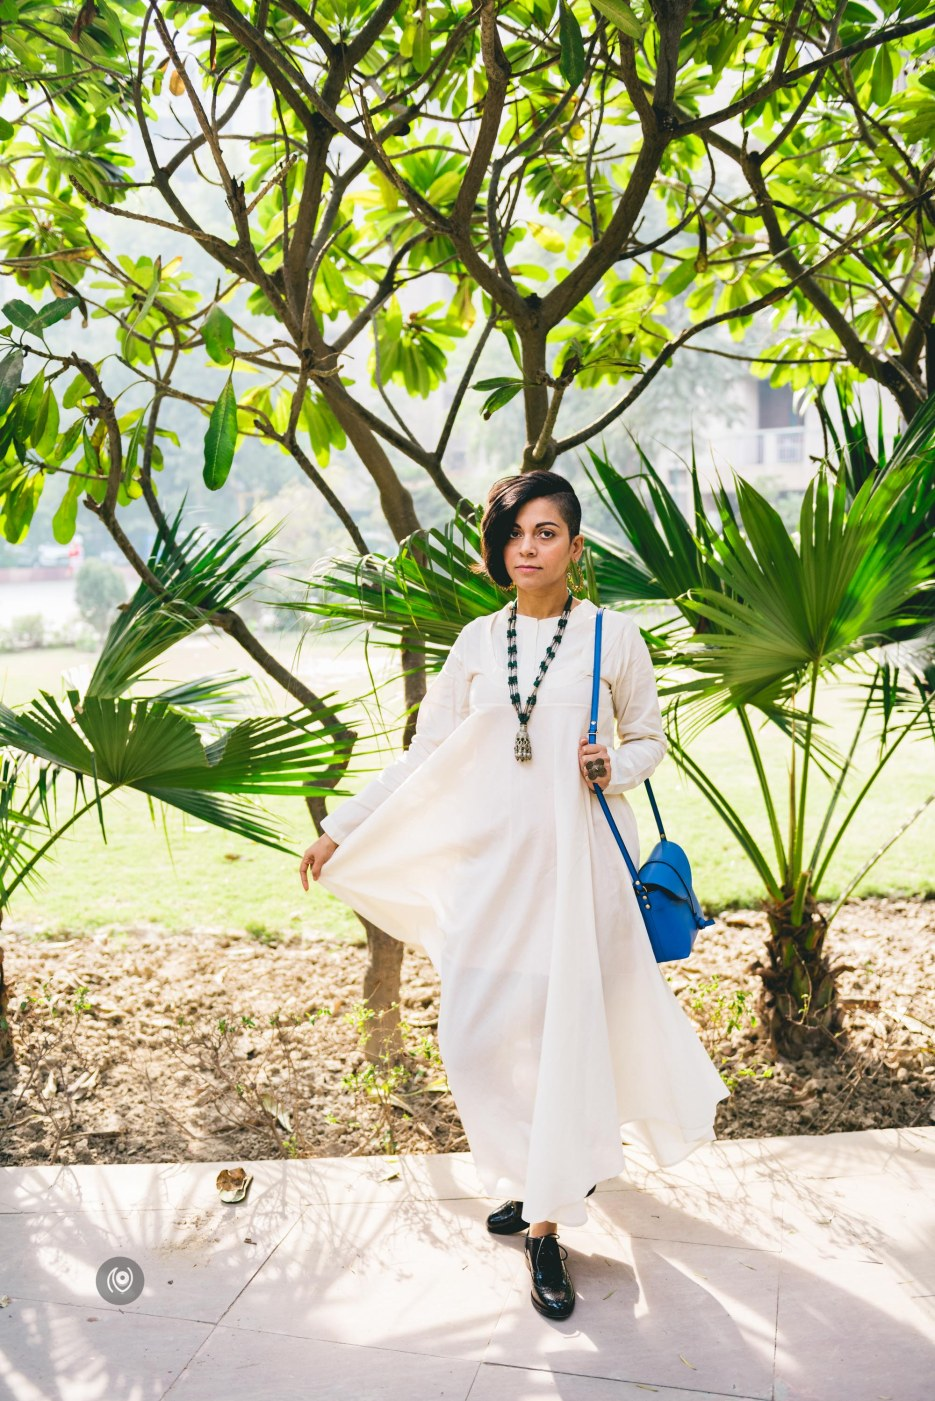 #CoverUp 61 #MadeInIndia with Raiman, Chiaroscuro, Maharani Baug, Vanilla Moon, Naina.co, Naina Redhu, Luxury Photographer, Lifestyle Photographer, Luxury Blogger, Lifestyle Blogger, Experience Collector, Personal Style